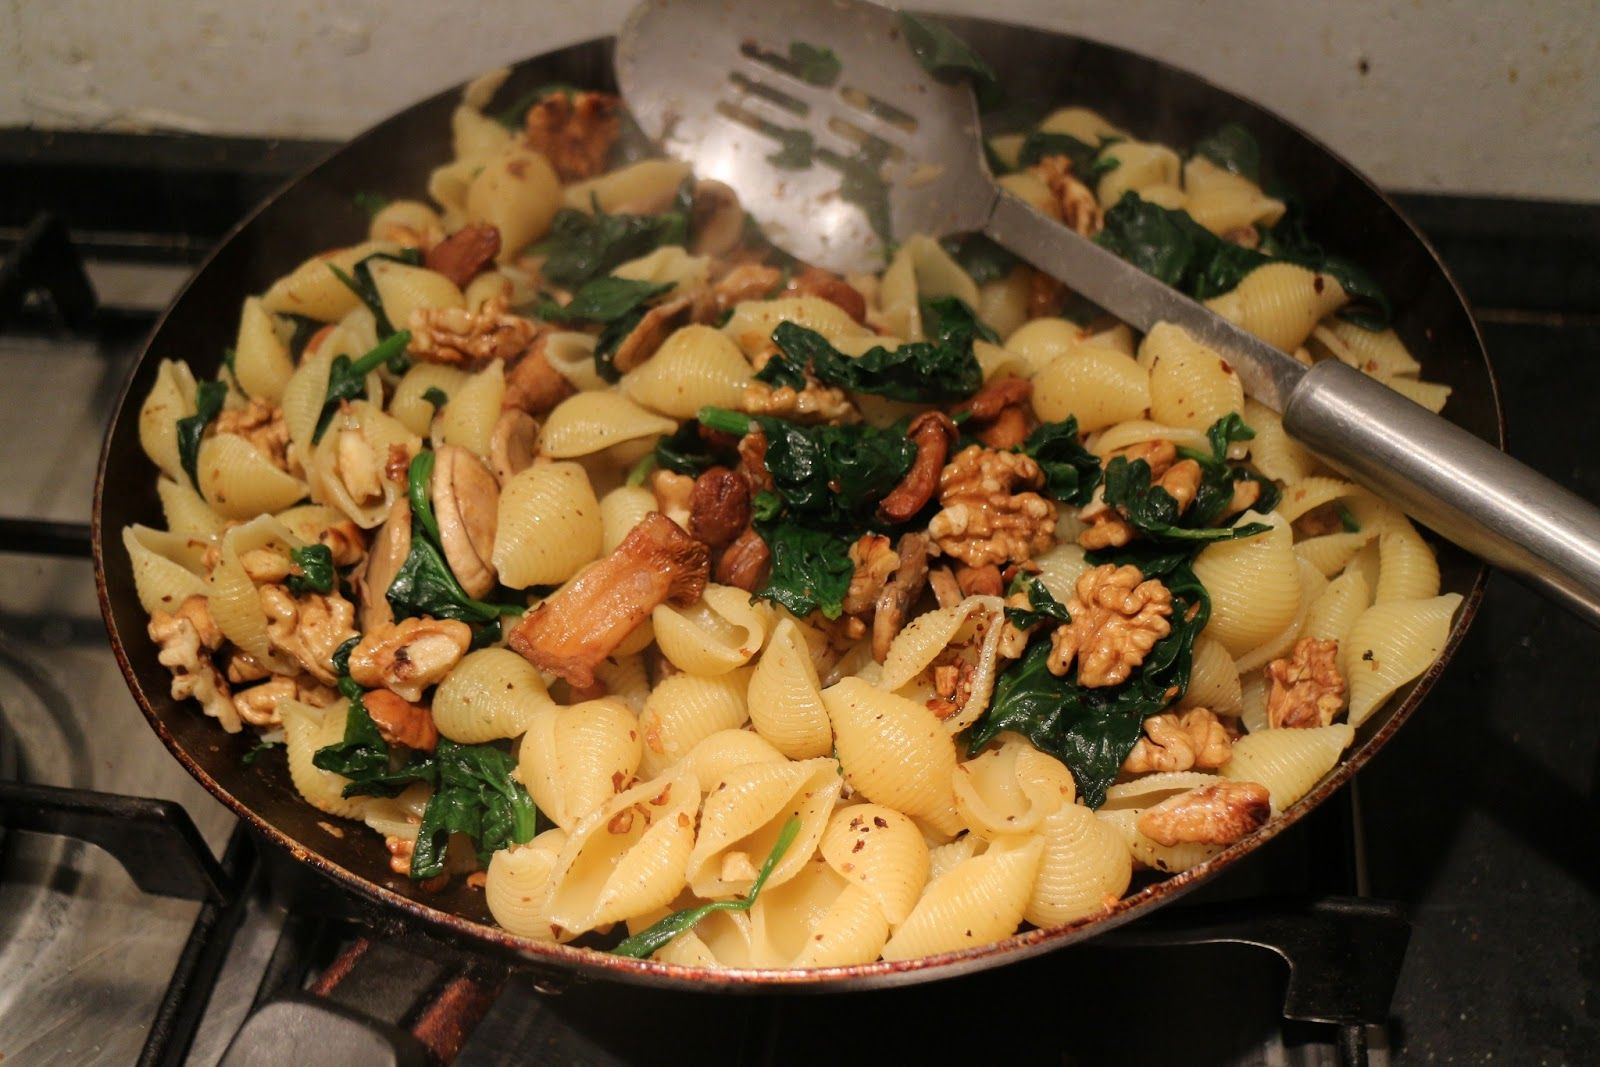 Living in Sin: Nice - Home Cooking - Meatless Monday - Pasta with Spinach, Mushrooms & Walnuts